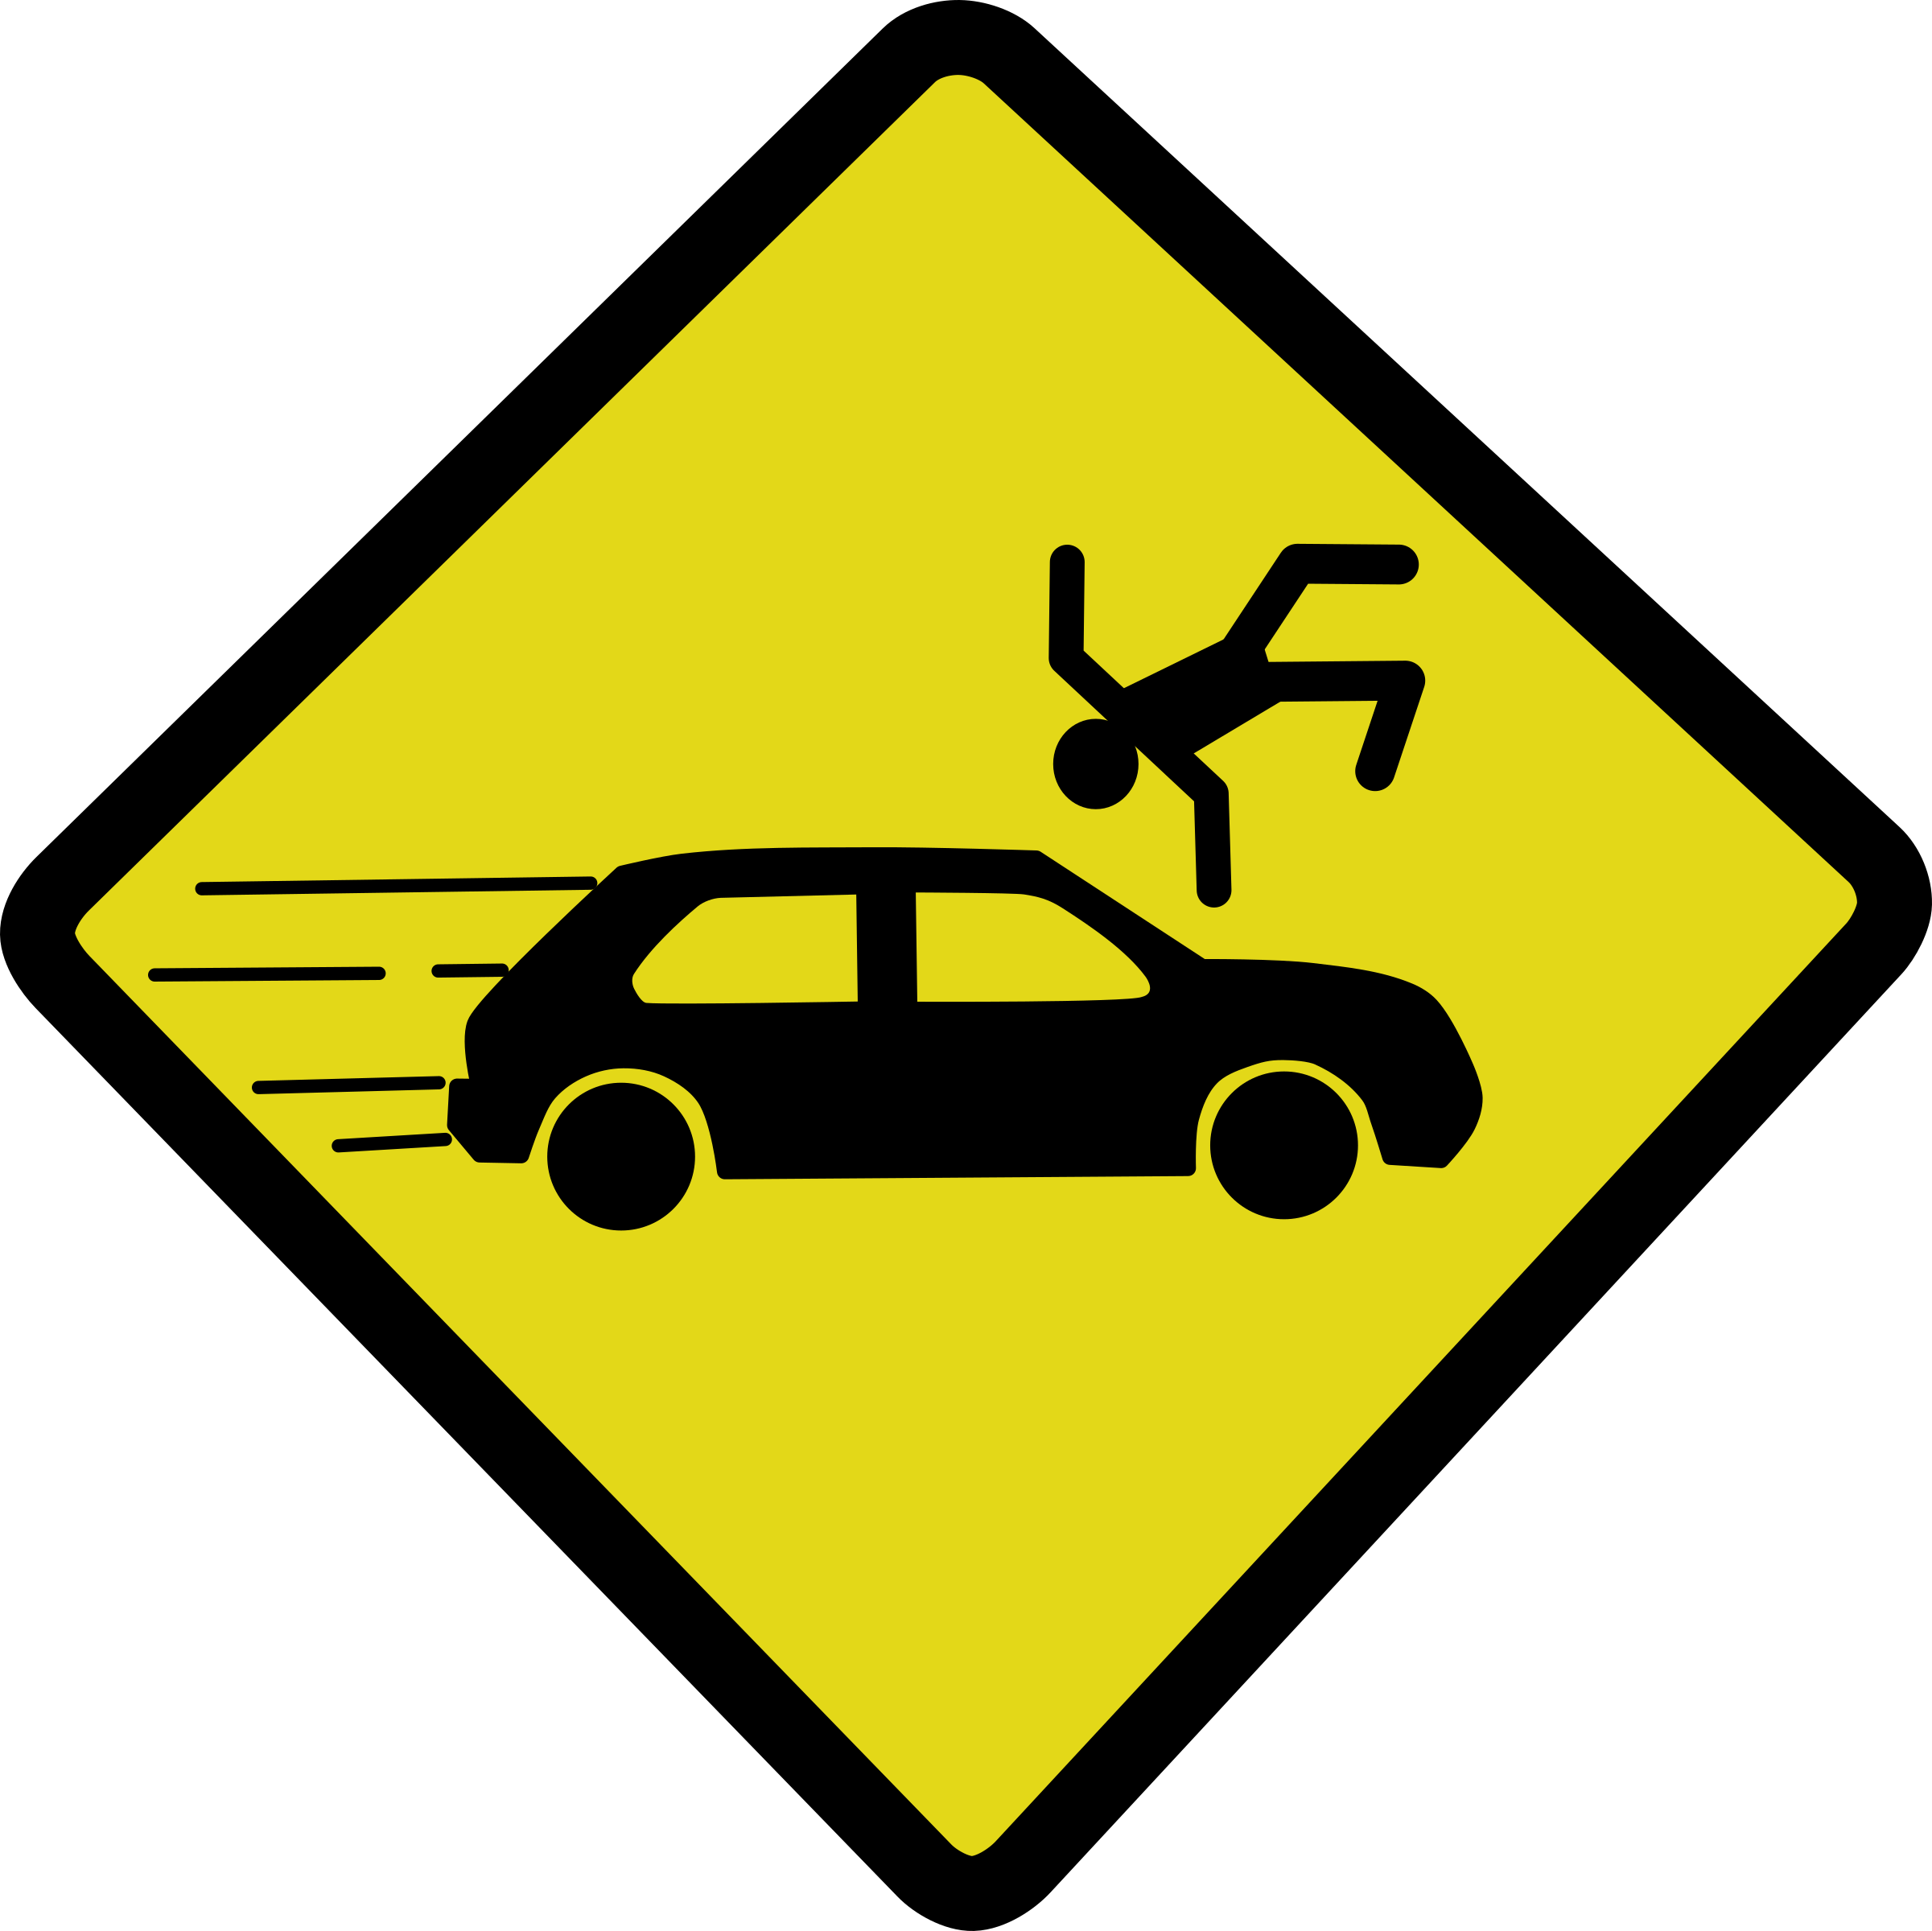 Car Crash Clip Art.